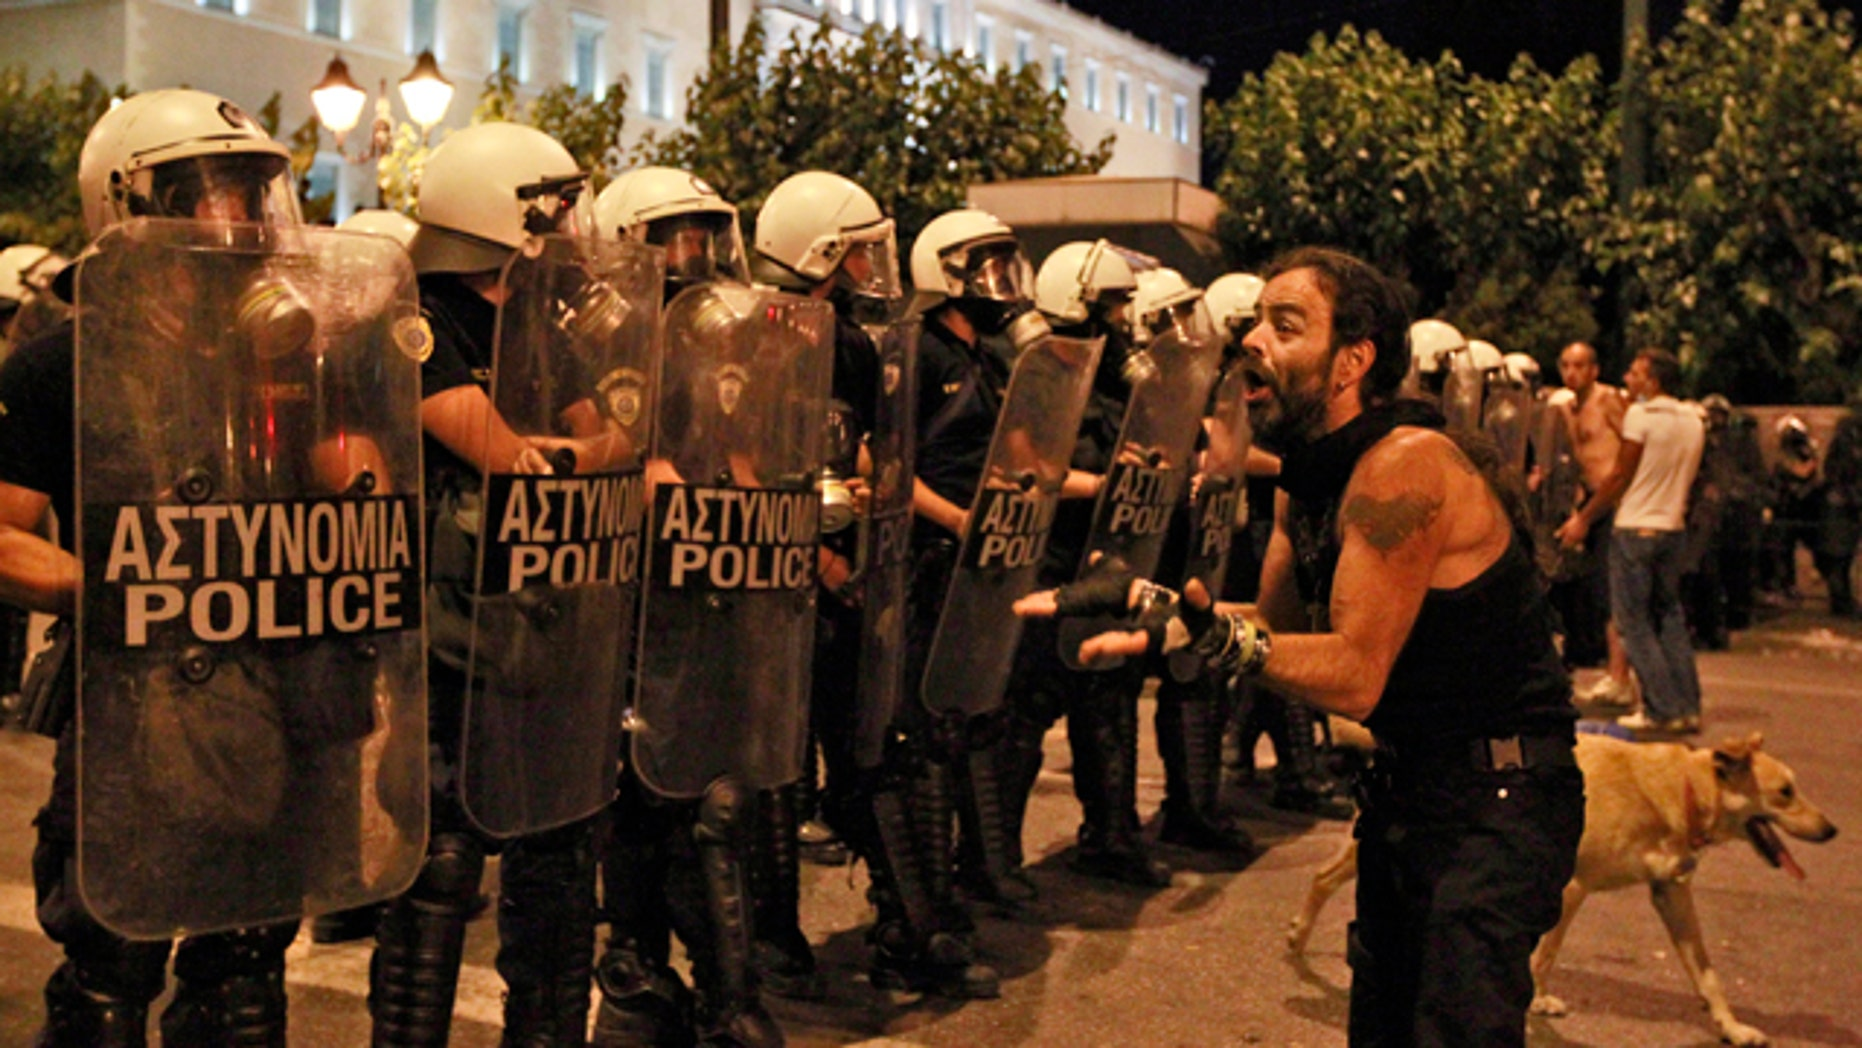 June 22: A lone protester challenges Greek riot police officers at Syntagma square in front of the Greek Parliament in central Athens, during minor scuffles following a peaceful ongoing rally against plans for new austerity measures.